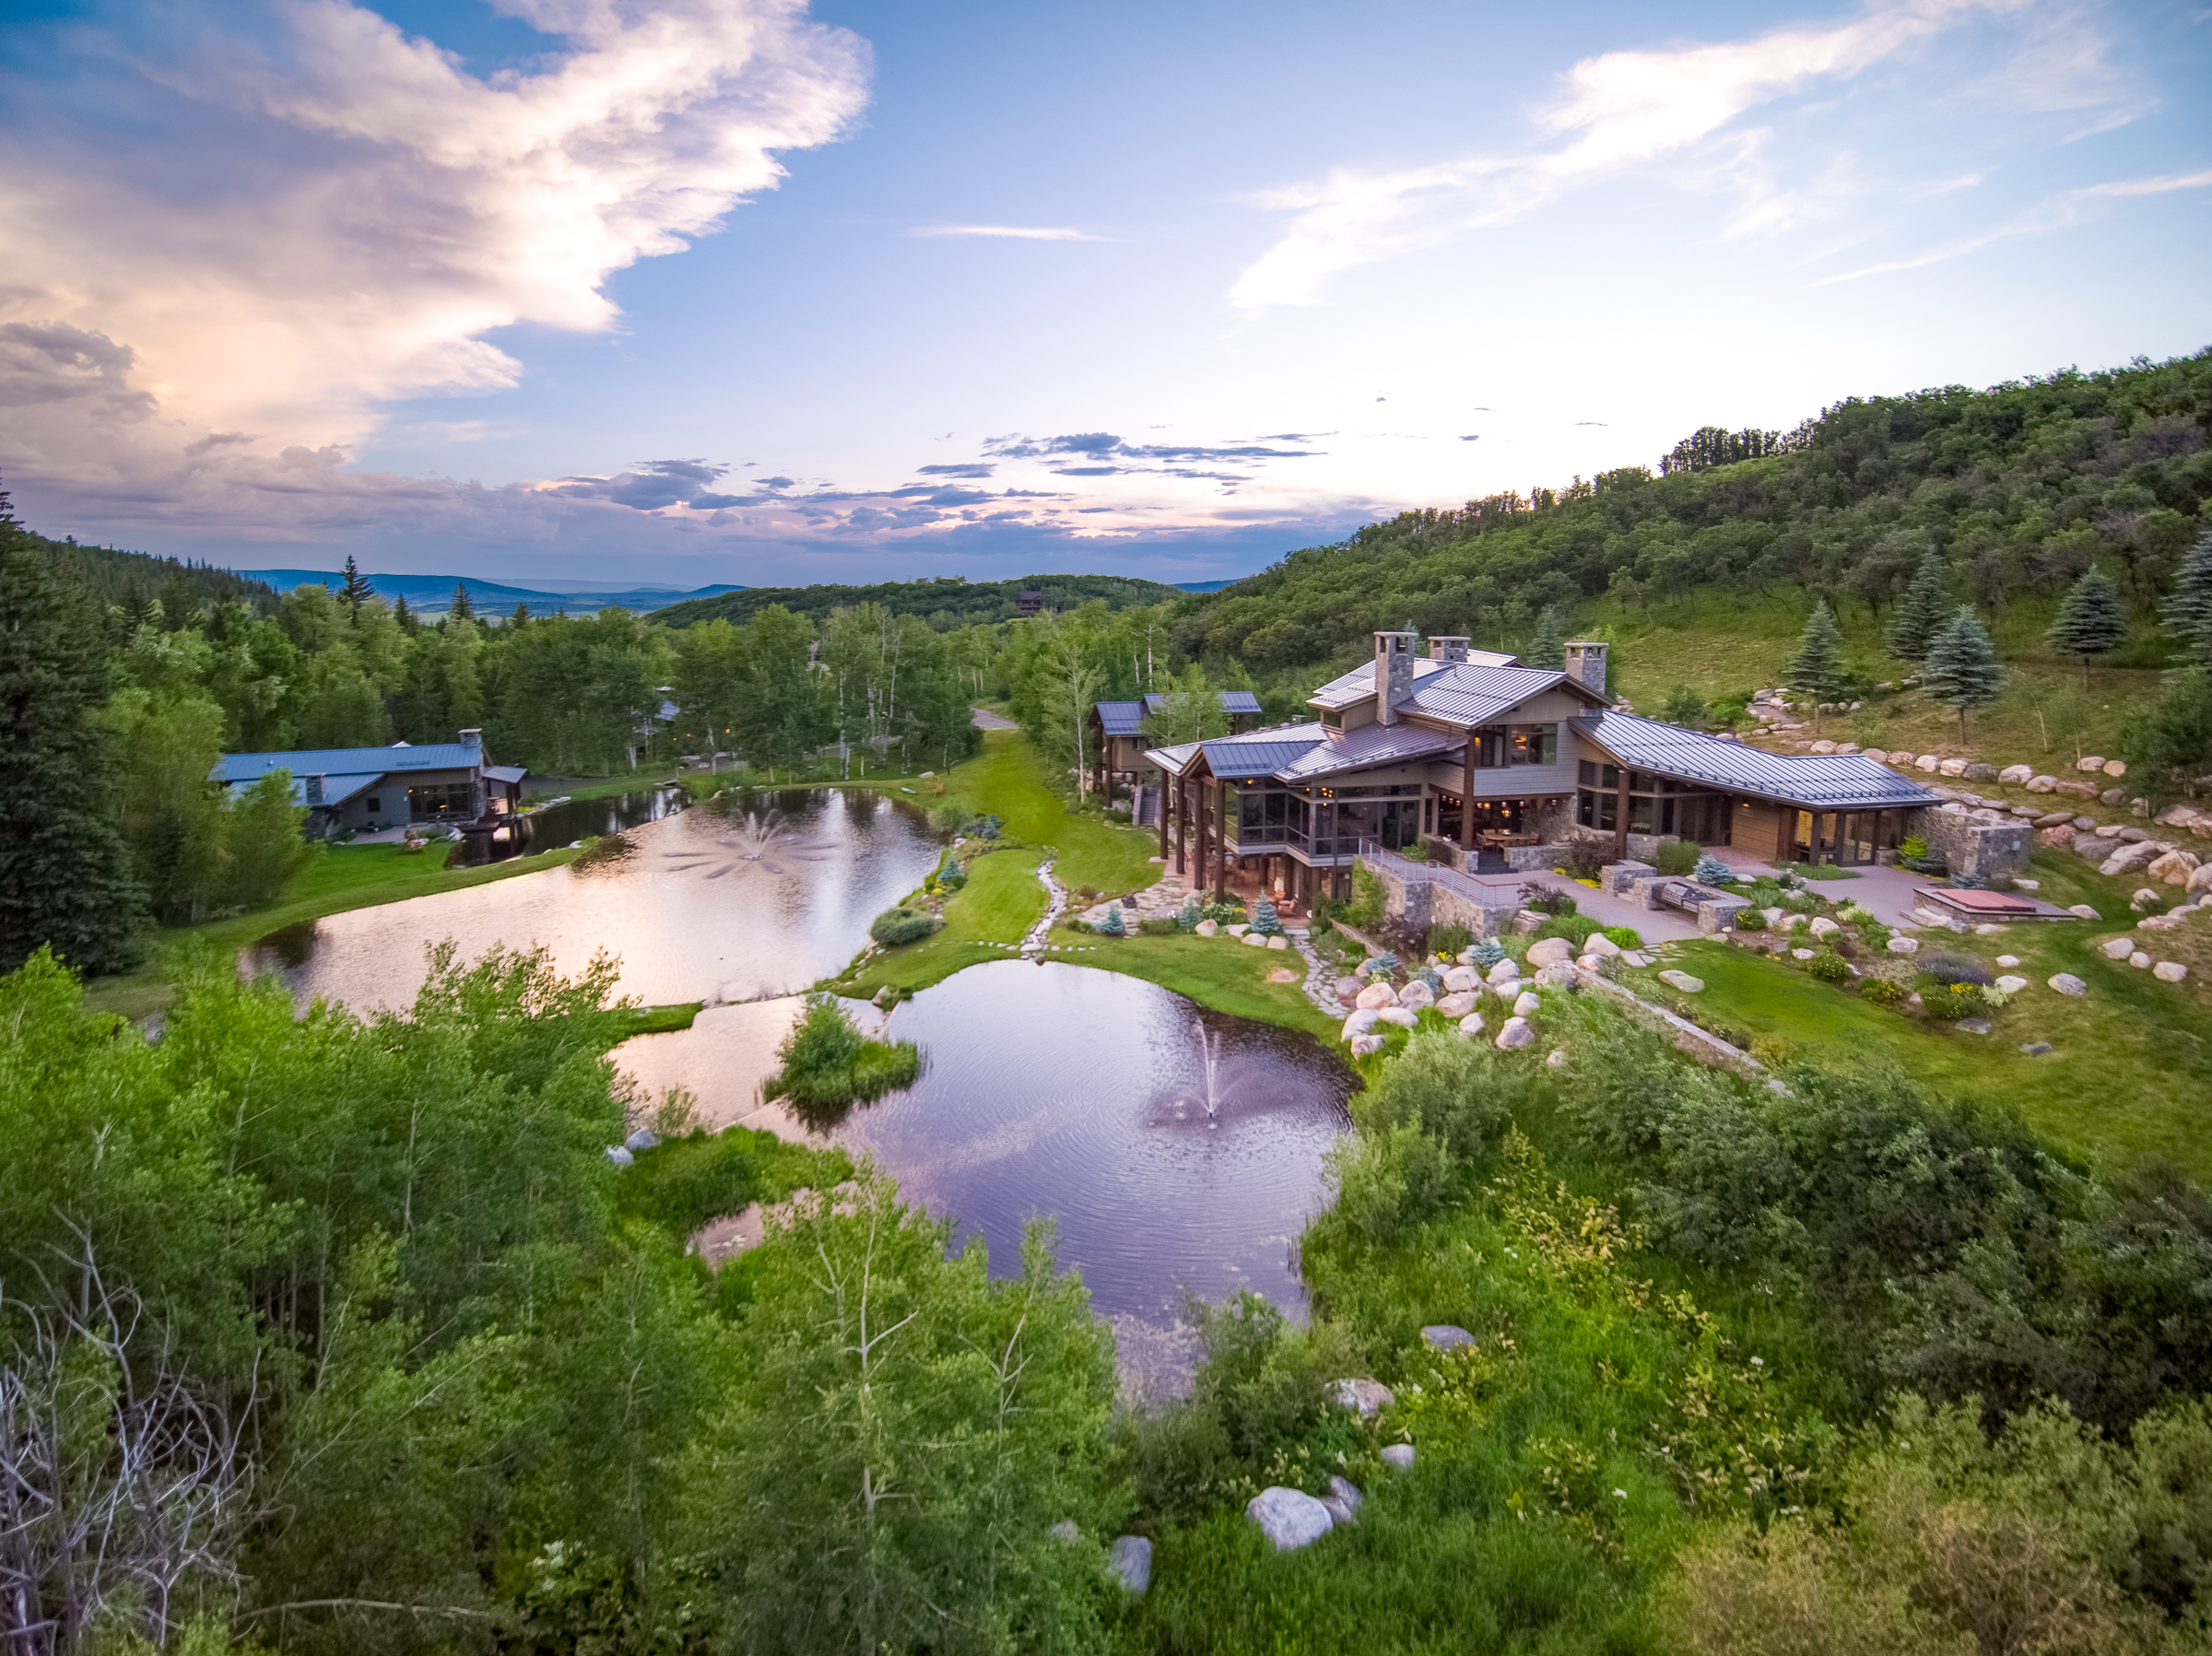 Casa unifamiliar en venta en/de 33700 Rushing Water Lane, Steamboat Springs, Colorado ,80487  , EUA